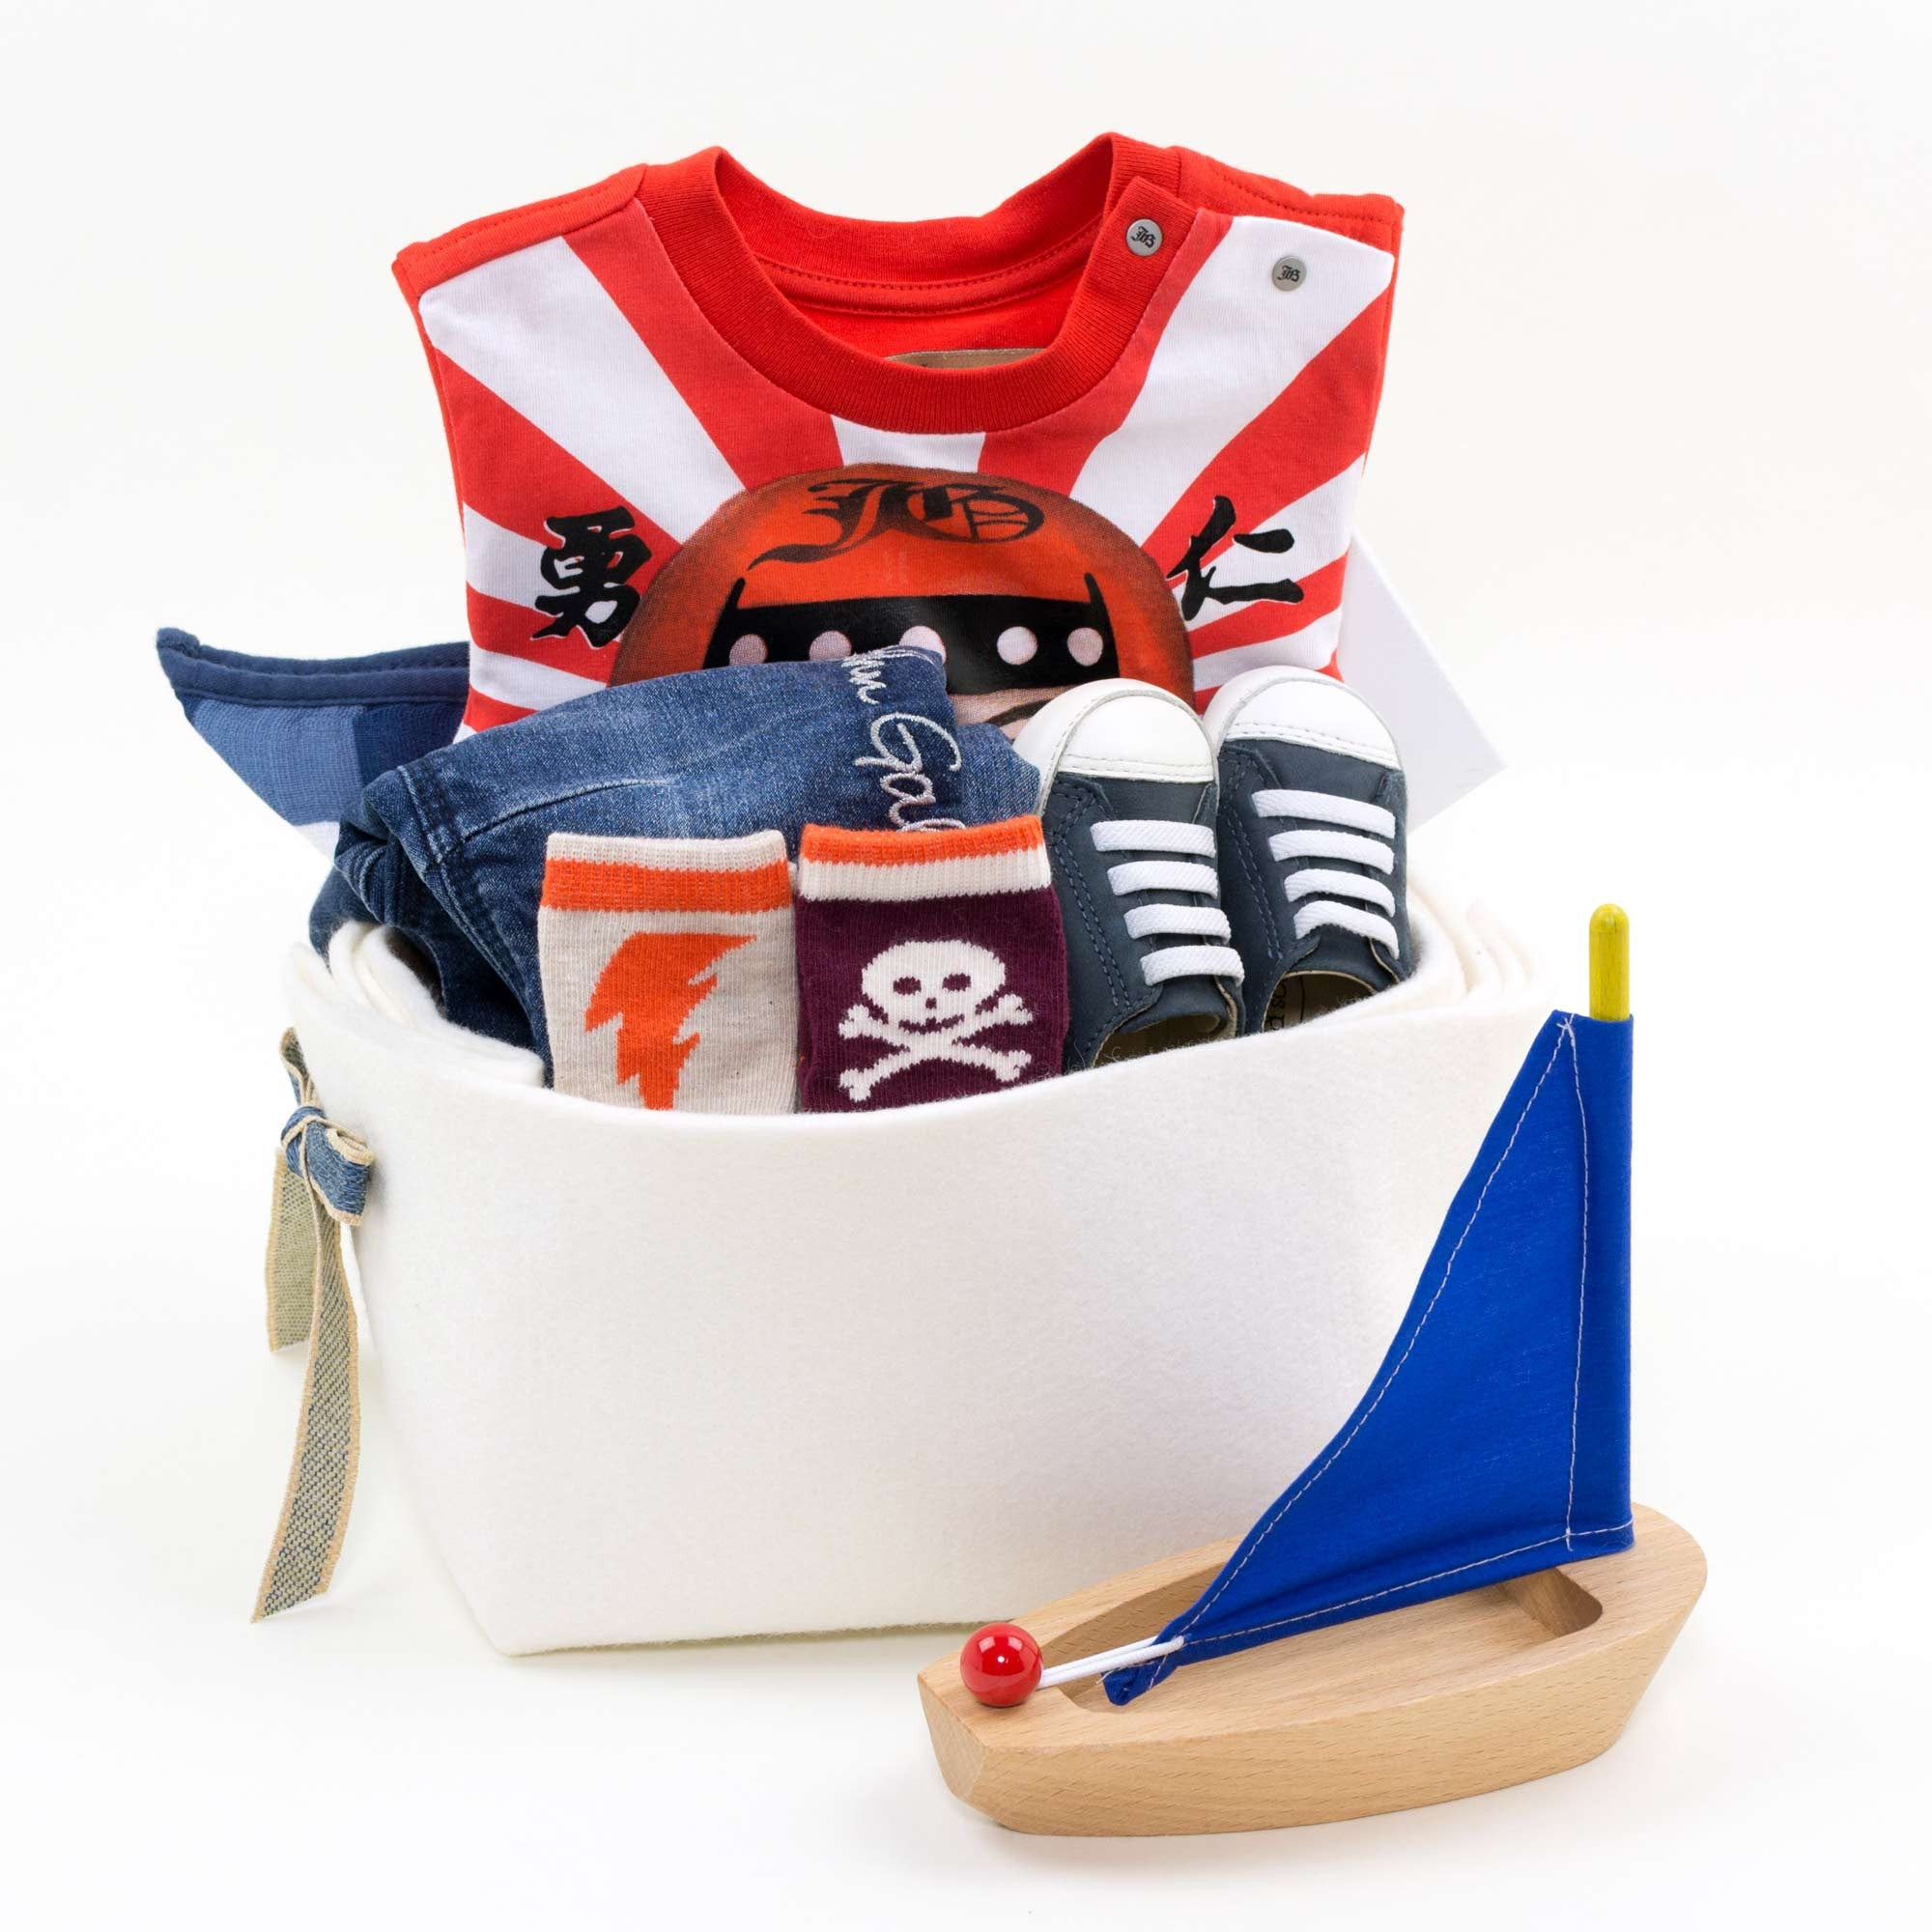 Baby Boy Gift Basket featuring John Galliano Samurai Print Tee and Jeans